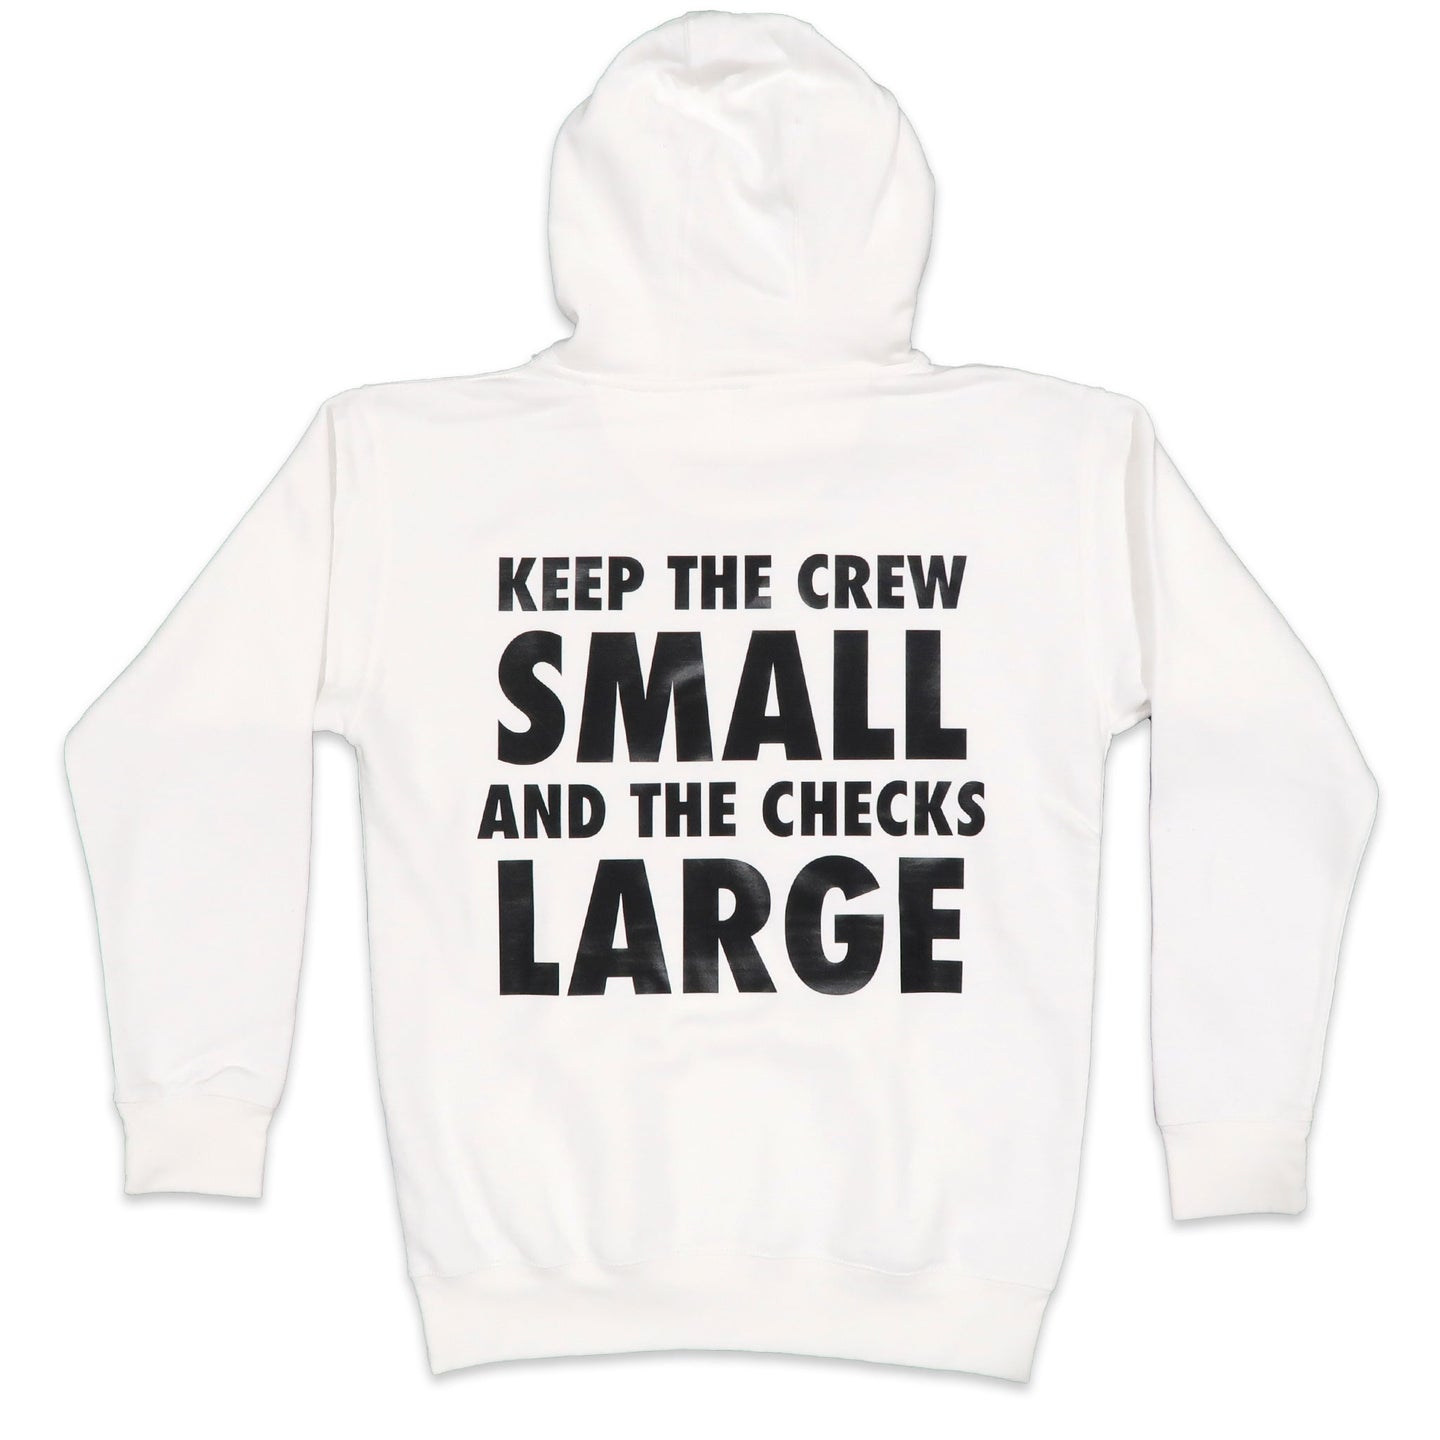 Crew Hoodie in White and Black